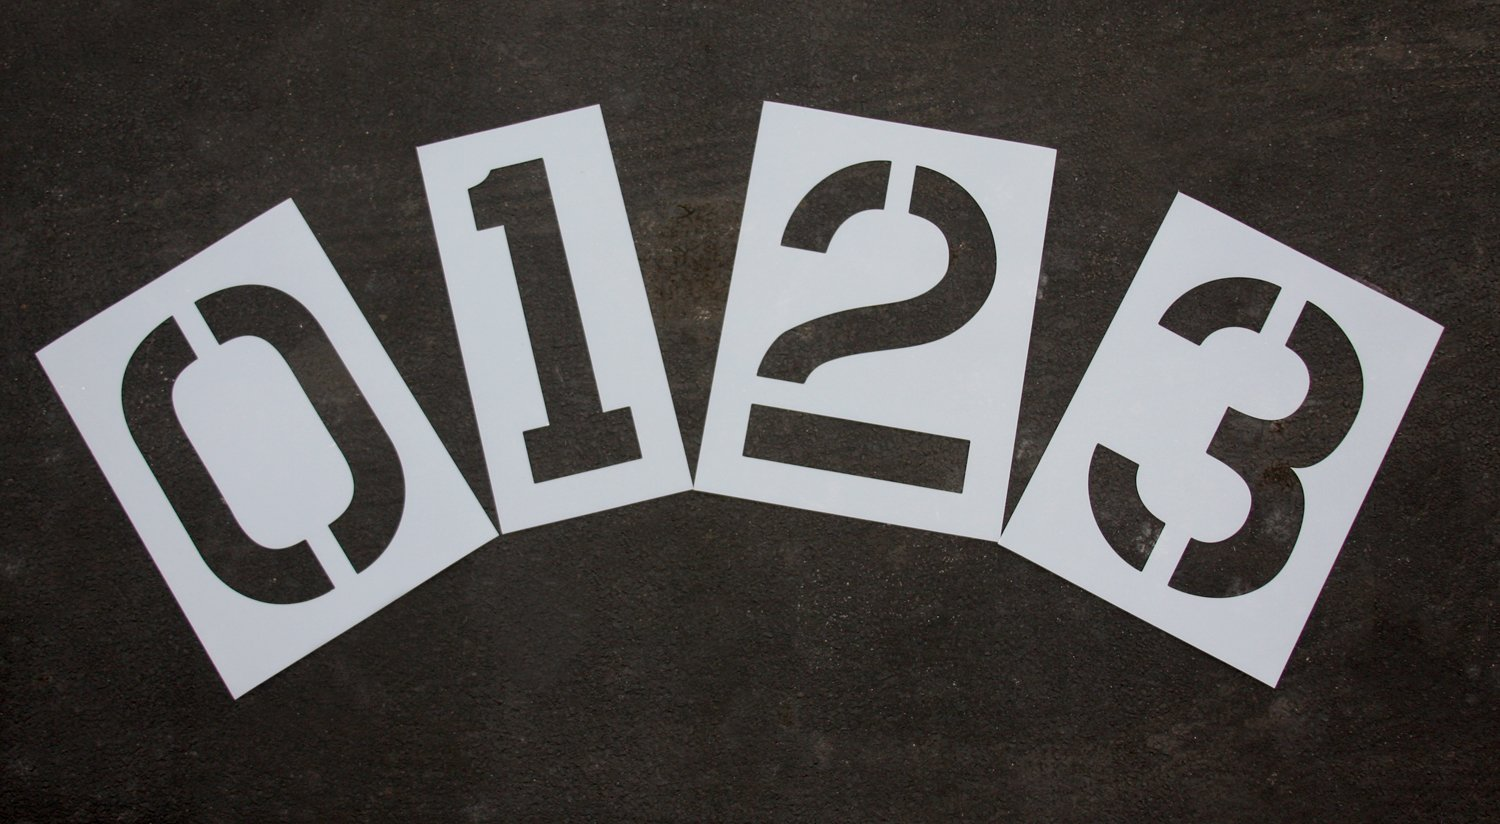 Parking Lot Pavement Stencils - 24 in - NUMBER KIT STENCIL SET - 1/8'' Pro-Grade - (12 Piece - (1) Number 0-9, and (2) blanks)